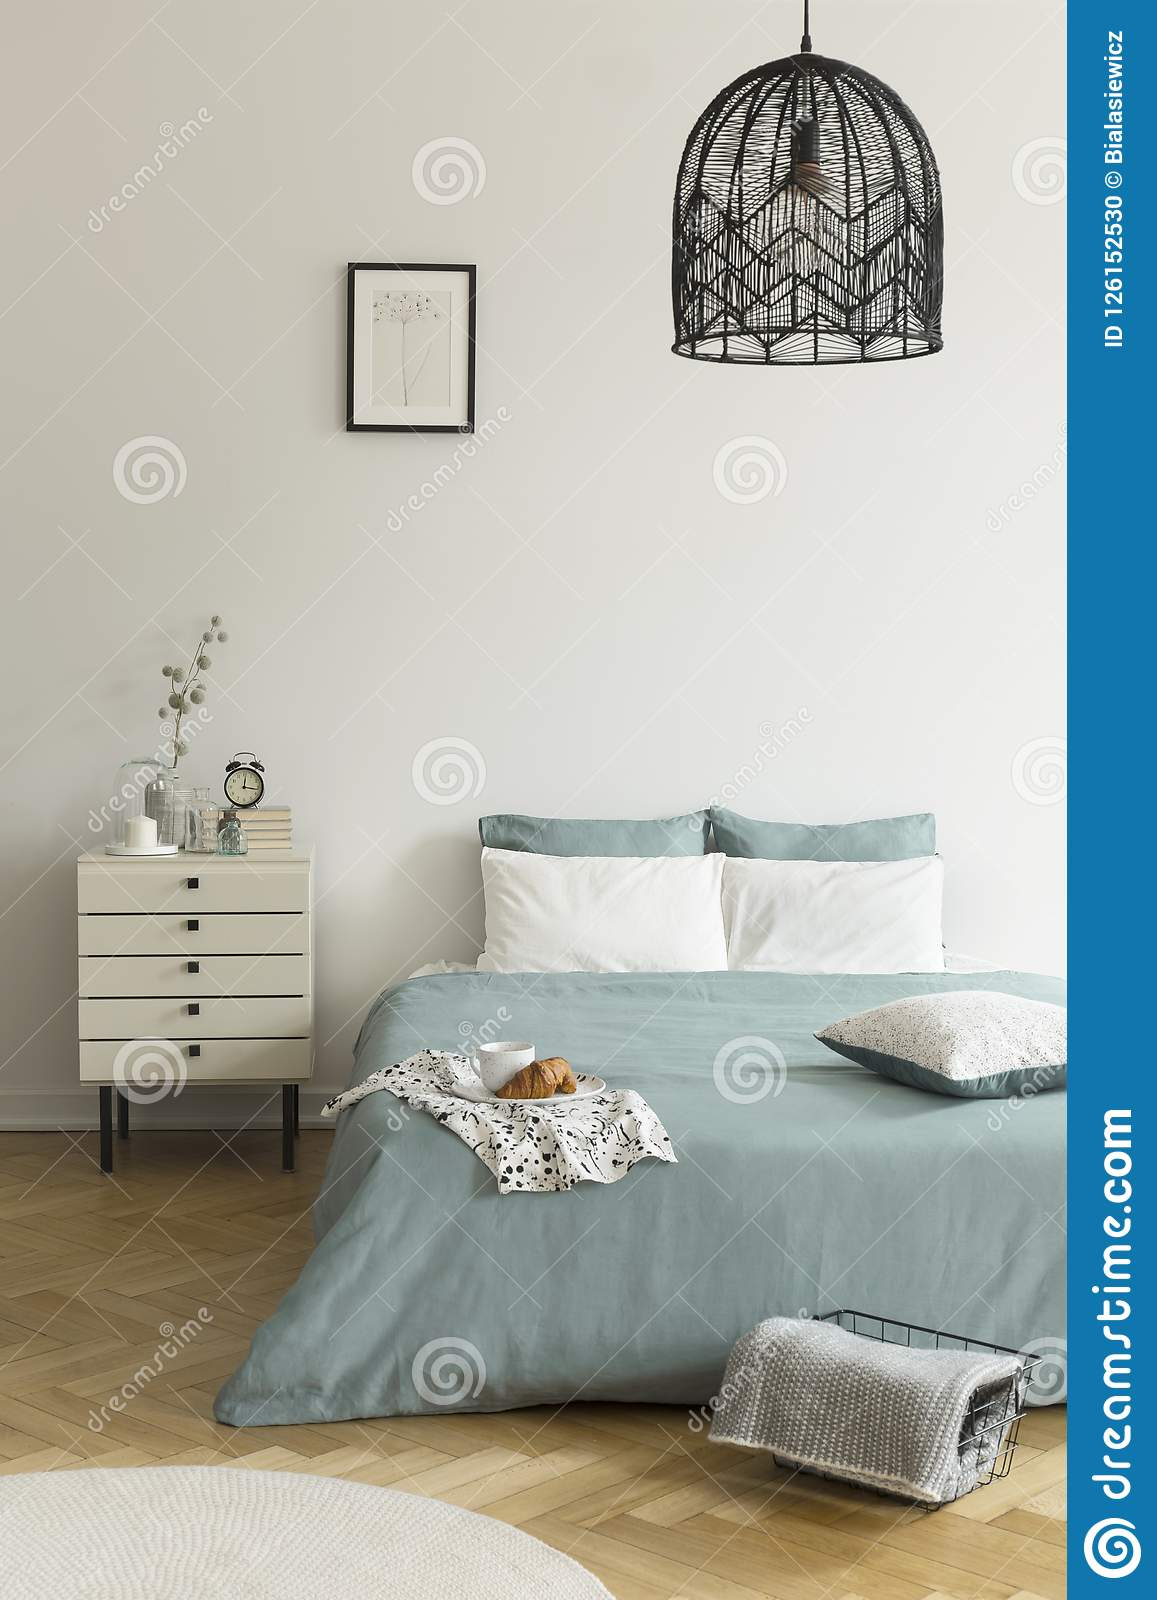 A Double Bed With Sage Green And White Bedding Standing On A Wooden Floor In A Bright Bedroom Interior A Nightstand Next To The B Stock Photo Image Of Flat Sage